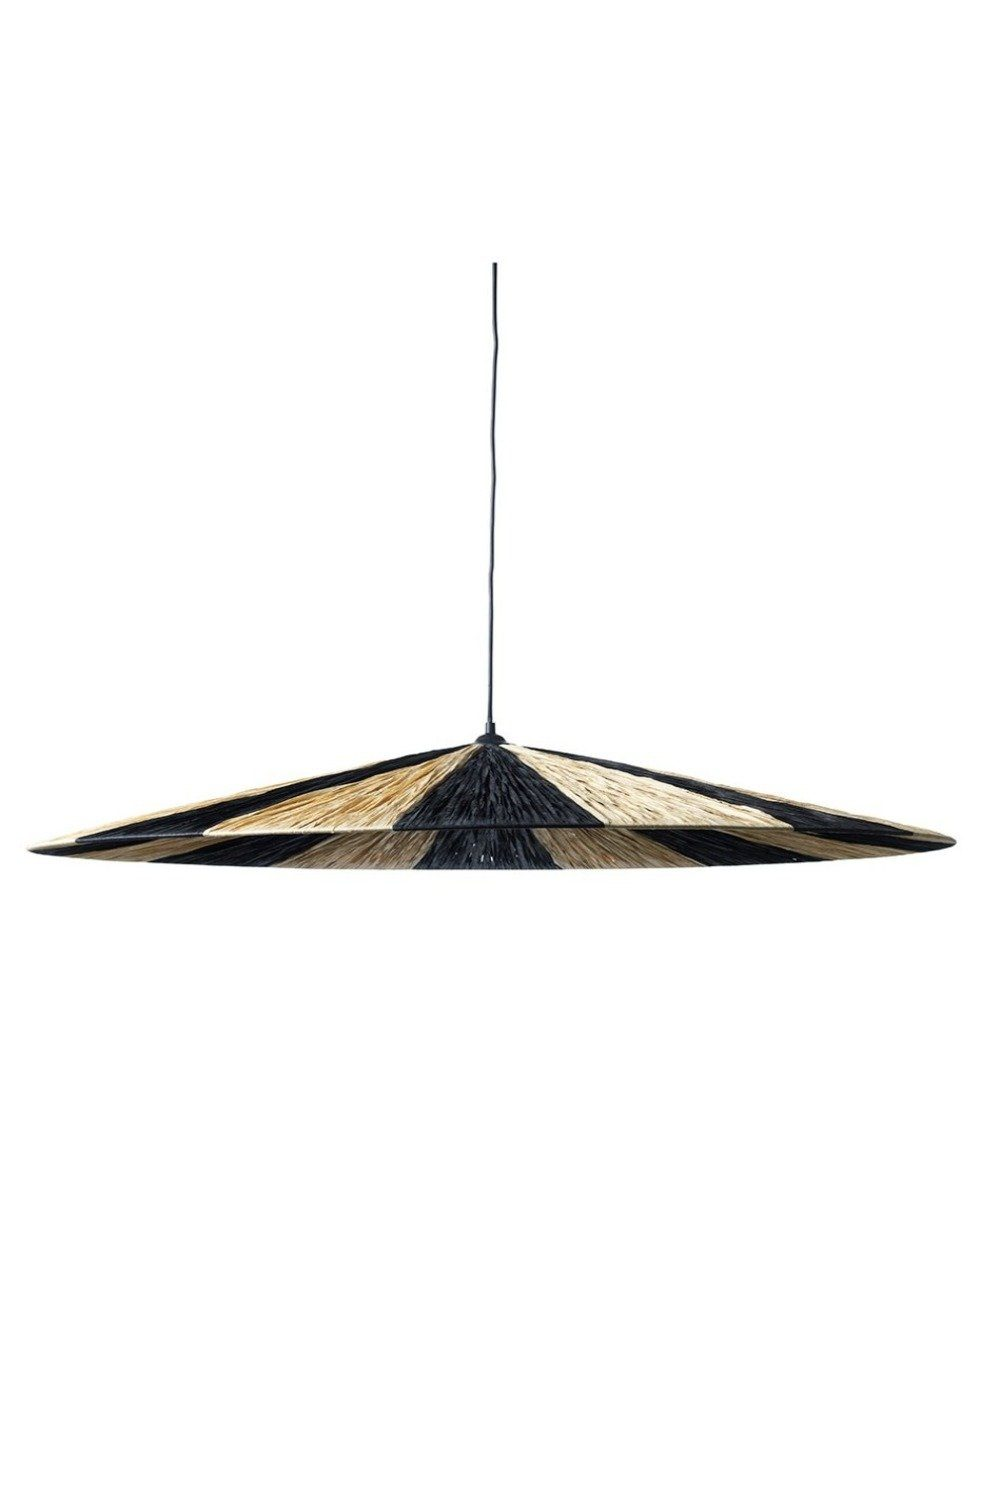 Large Parasol Ceiling Pendant Light - Charcoal and Natural Homewares Jore Copenhagen